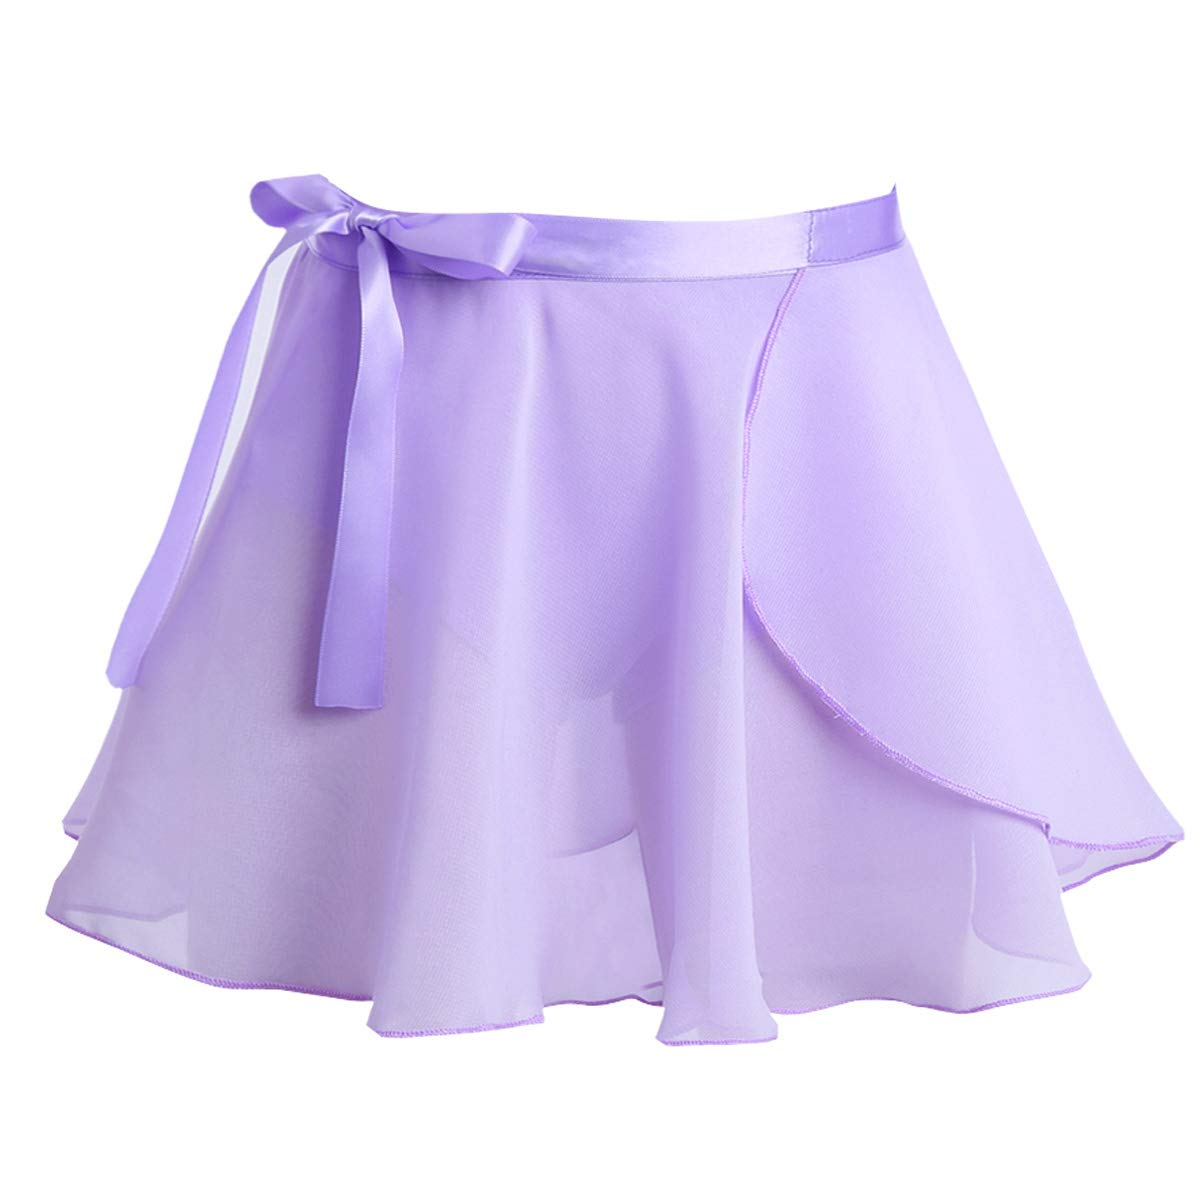 TiaoBug Girls' Ballet Dance Basic Wrap Over Scarf Chiffon Skirt with Tie Waist Collection Skate Workout Training Skorts Lavender 7-8 by TiaoBug